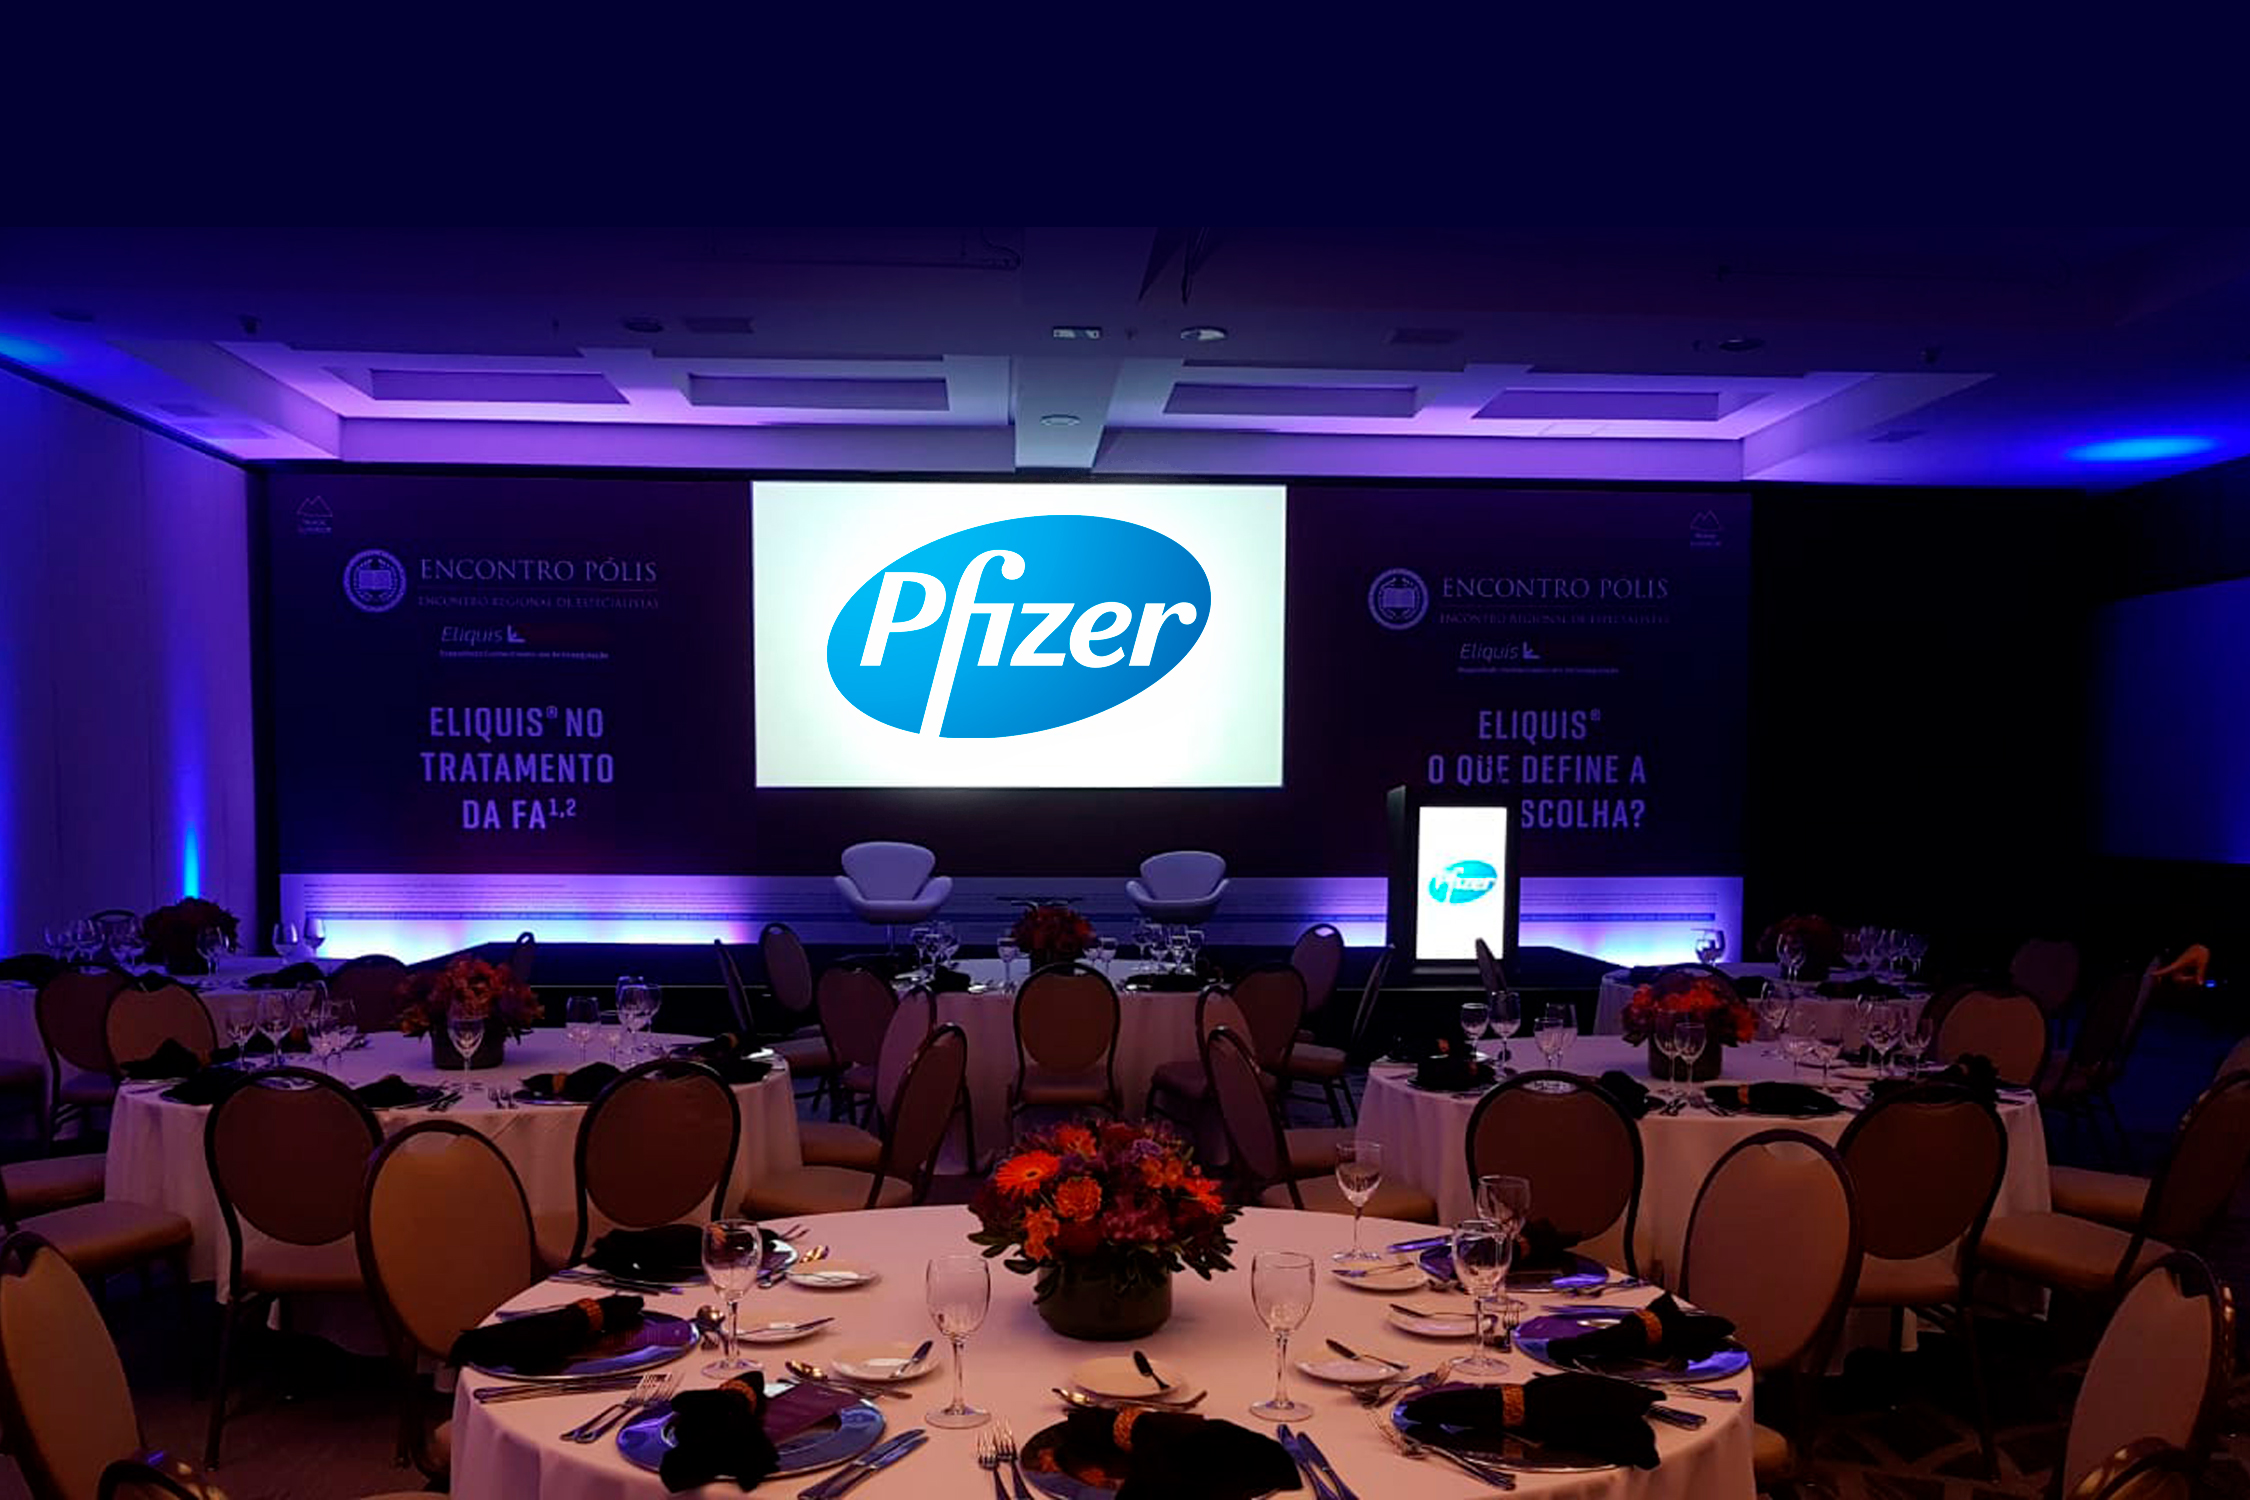 evento corporativo farmacéutica pfizer